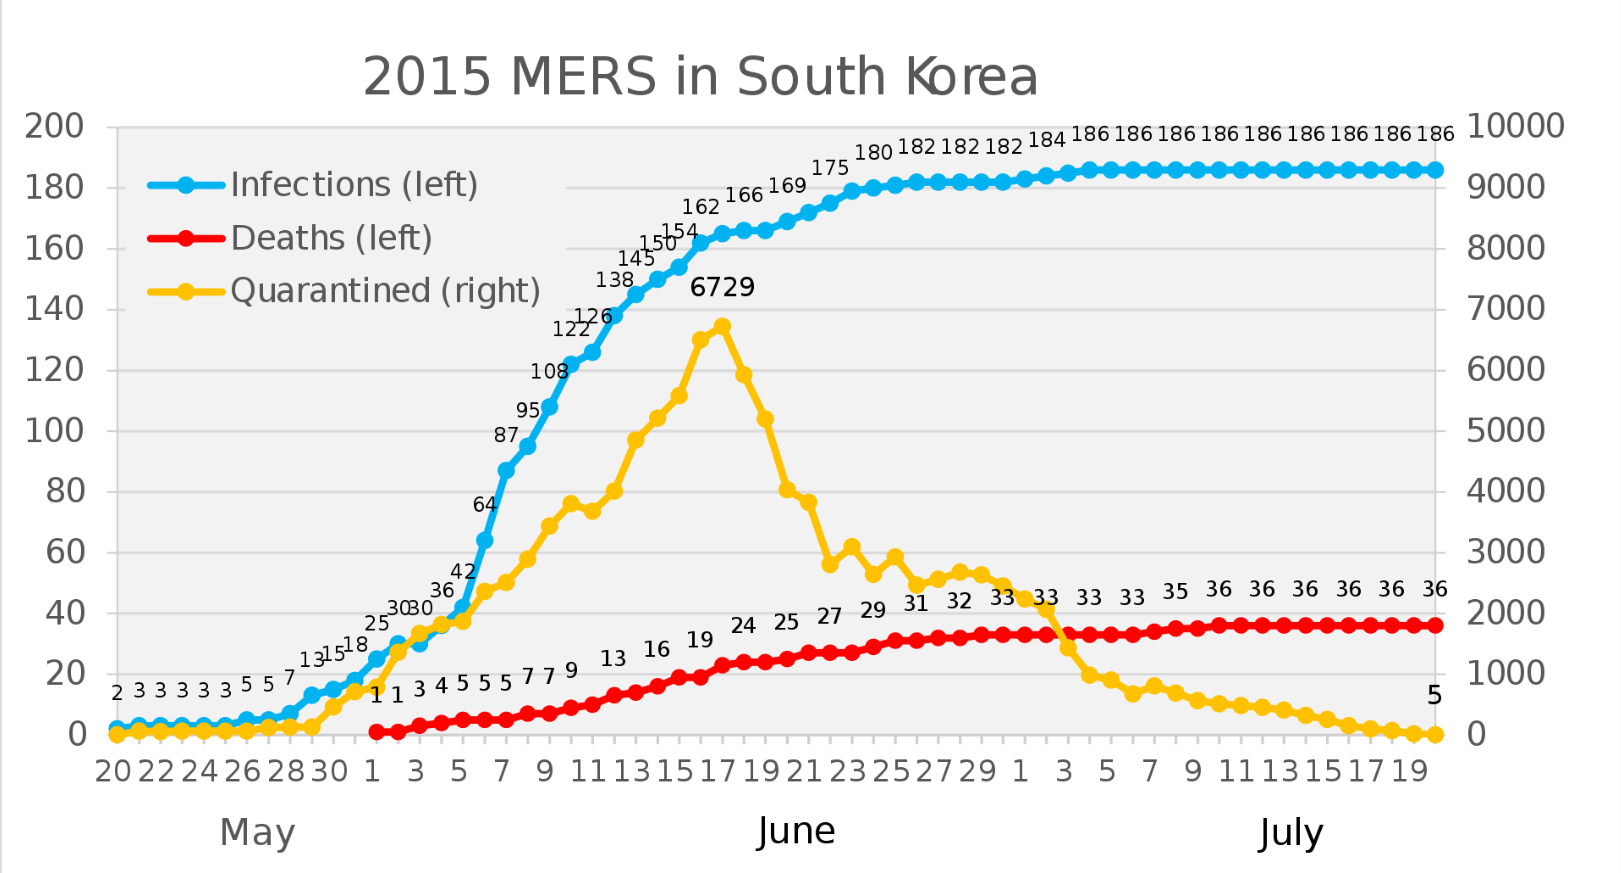 MERS in South Korea